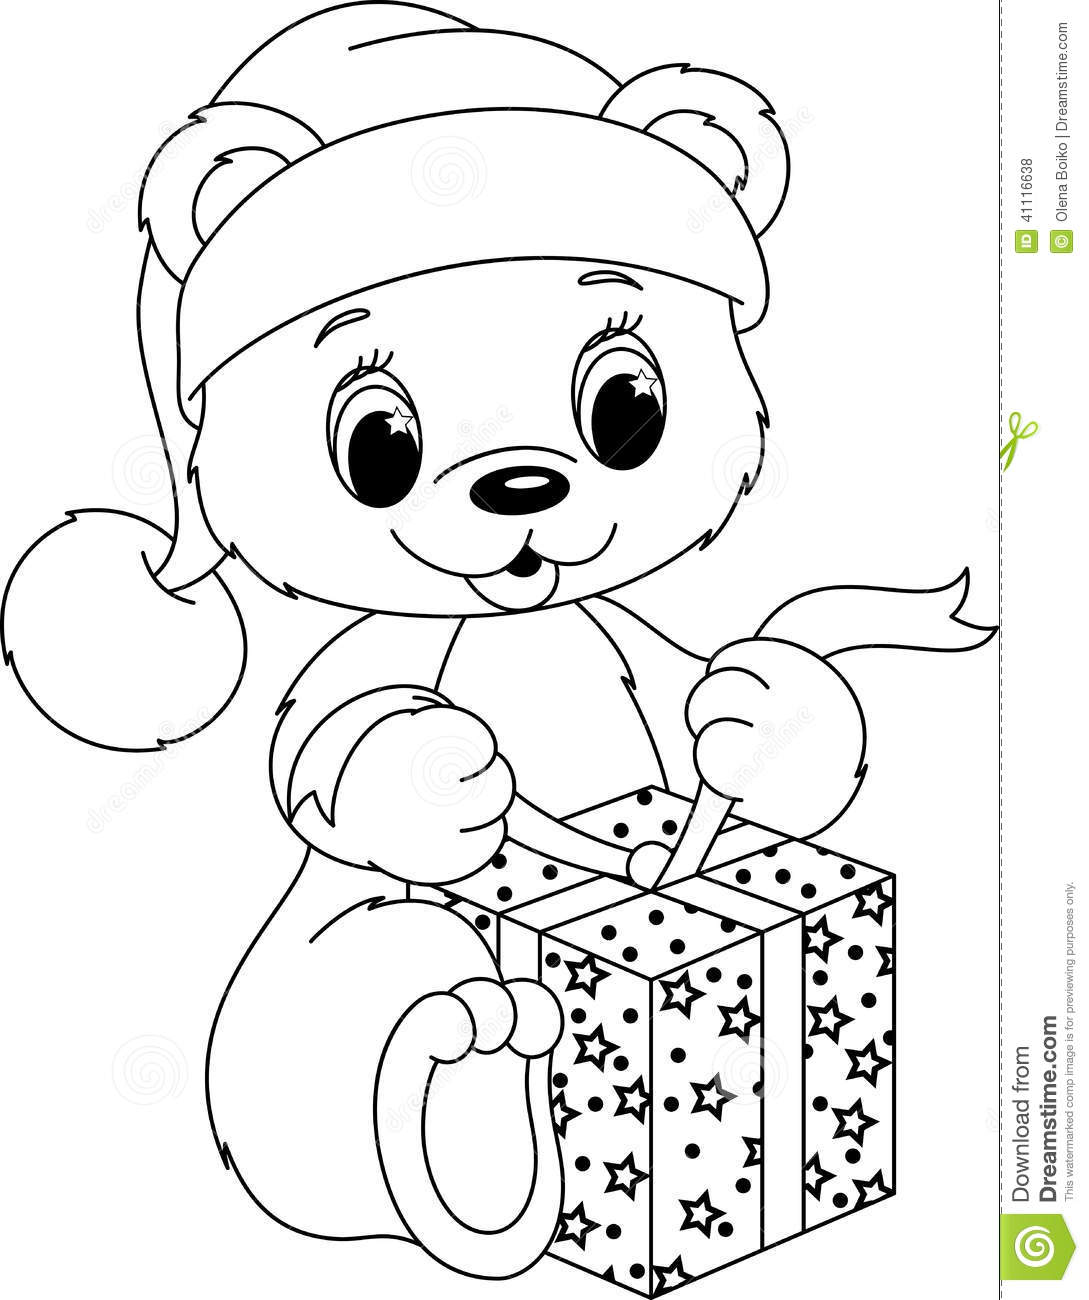 bear coloring page stock vector image 41116638